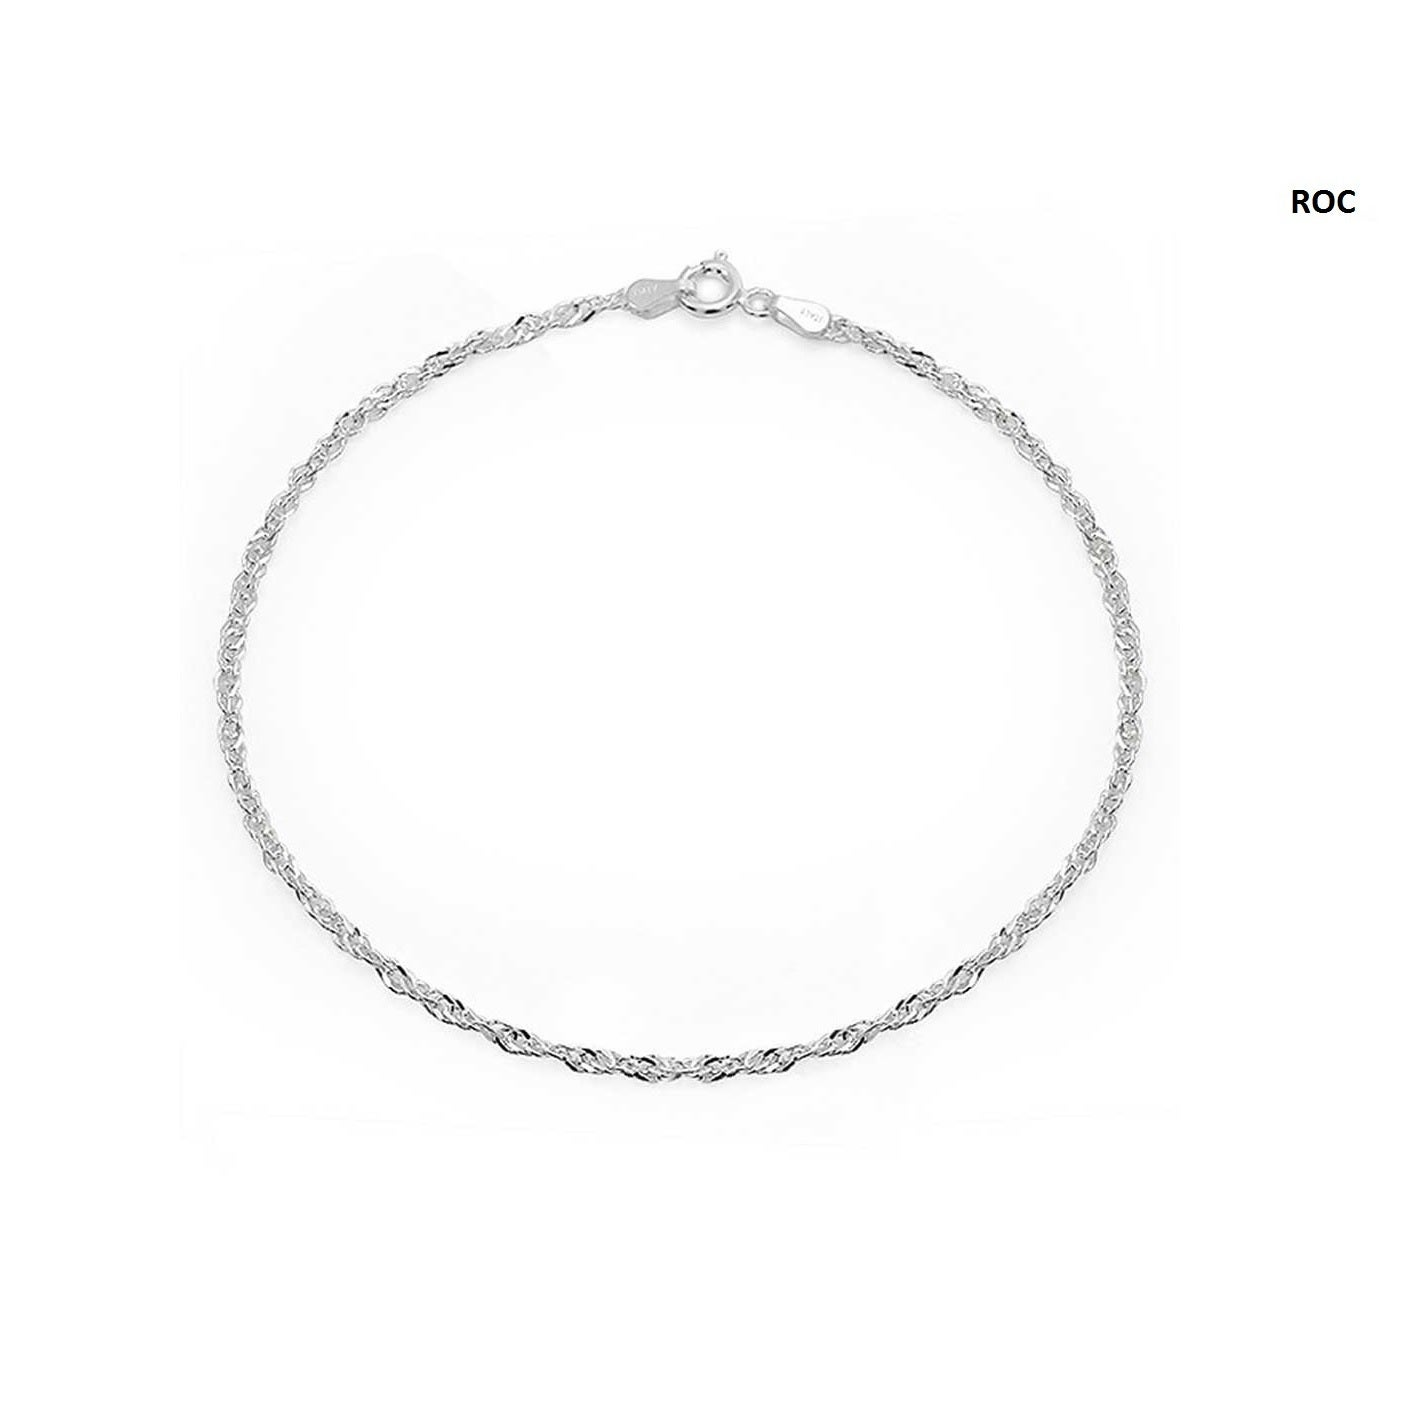 925 Thin Sterling Silver Uni Bracelets Orted Styles On Free Shipping Orders Over 45 16753720